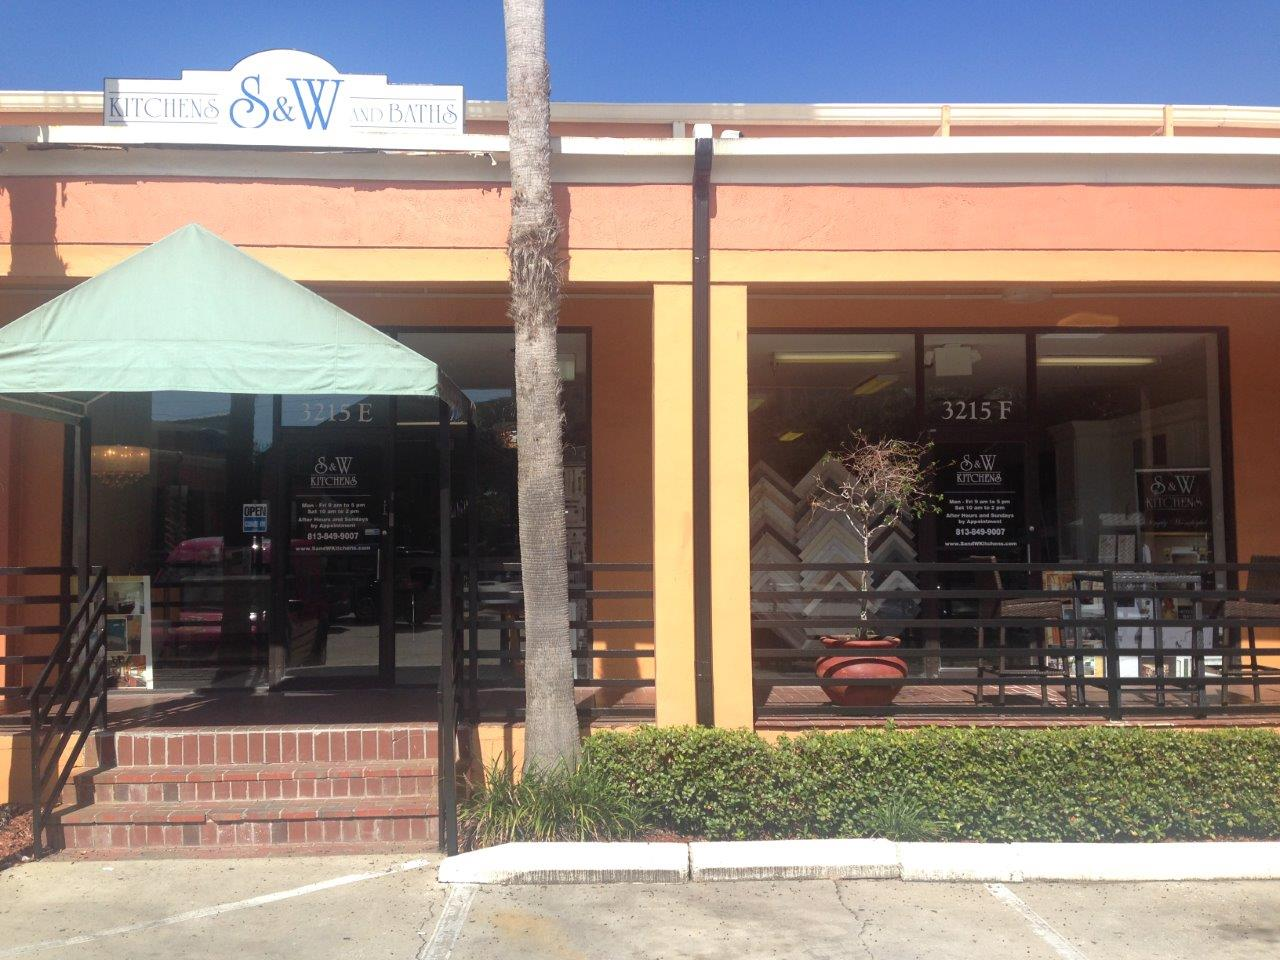 South Tampa S&W Kitchens storefront